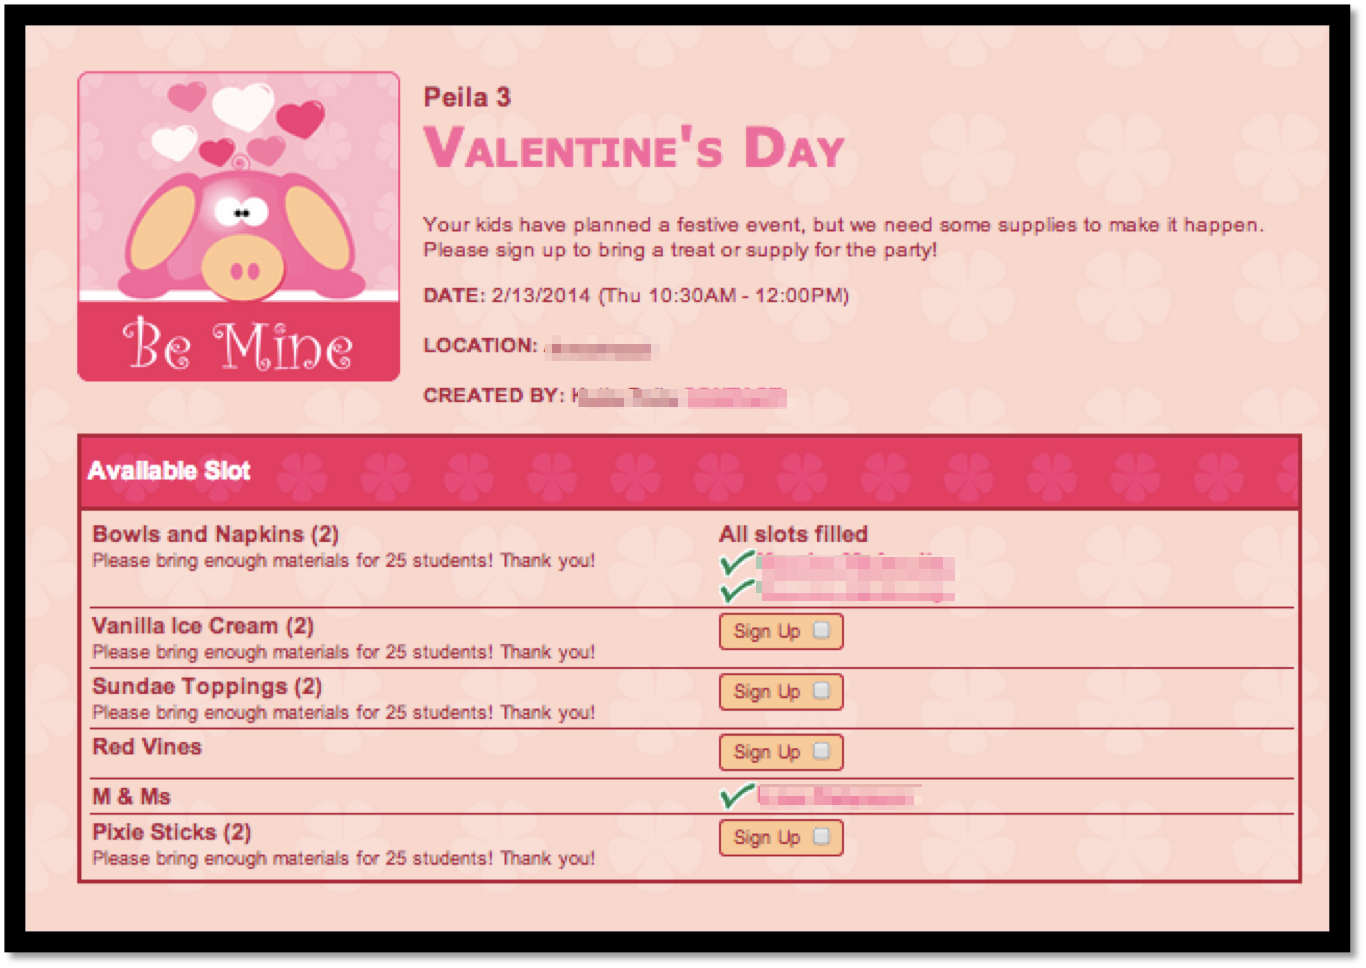 Guest blog post from Kate Peila at Purely Paperless who shows us that Technology + Valentine's Day = Fun!